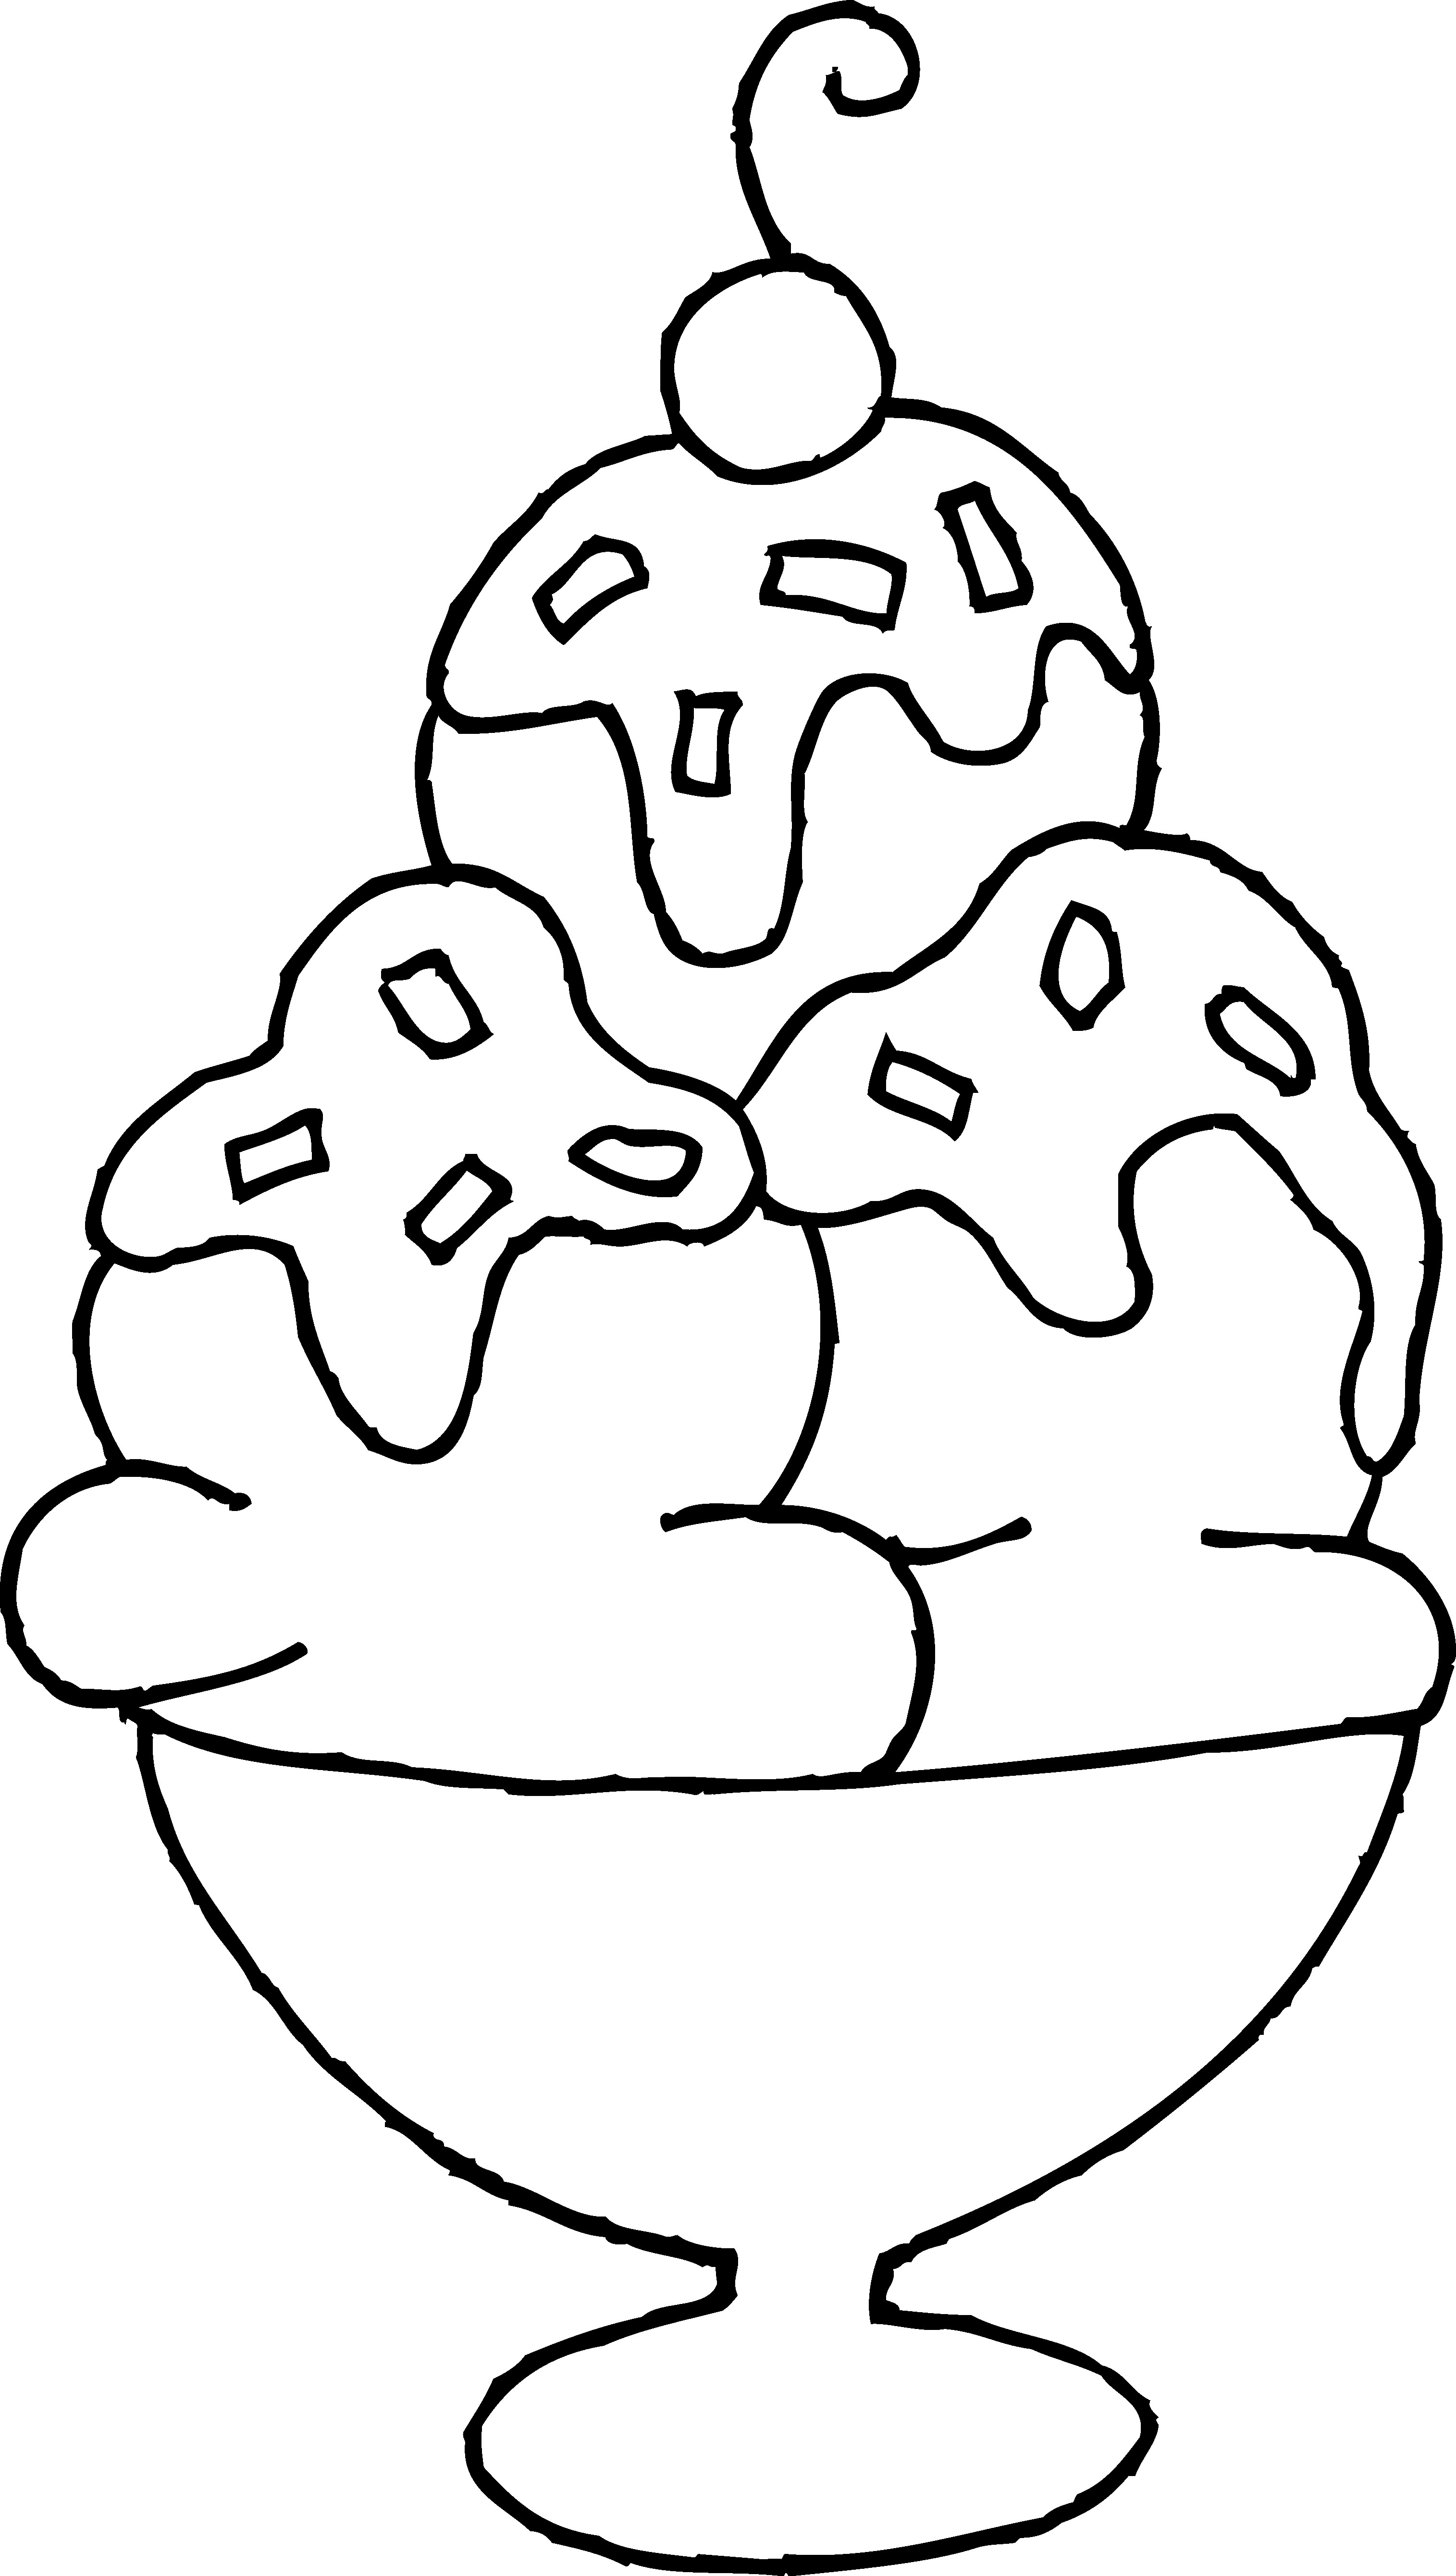 clipart coloring pages fall coloring pages 2018 dr odd clipart coloring pages